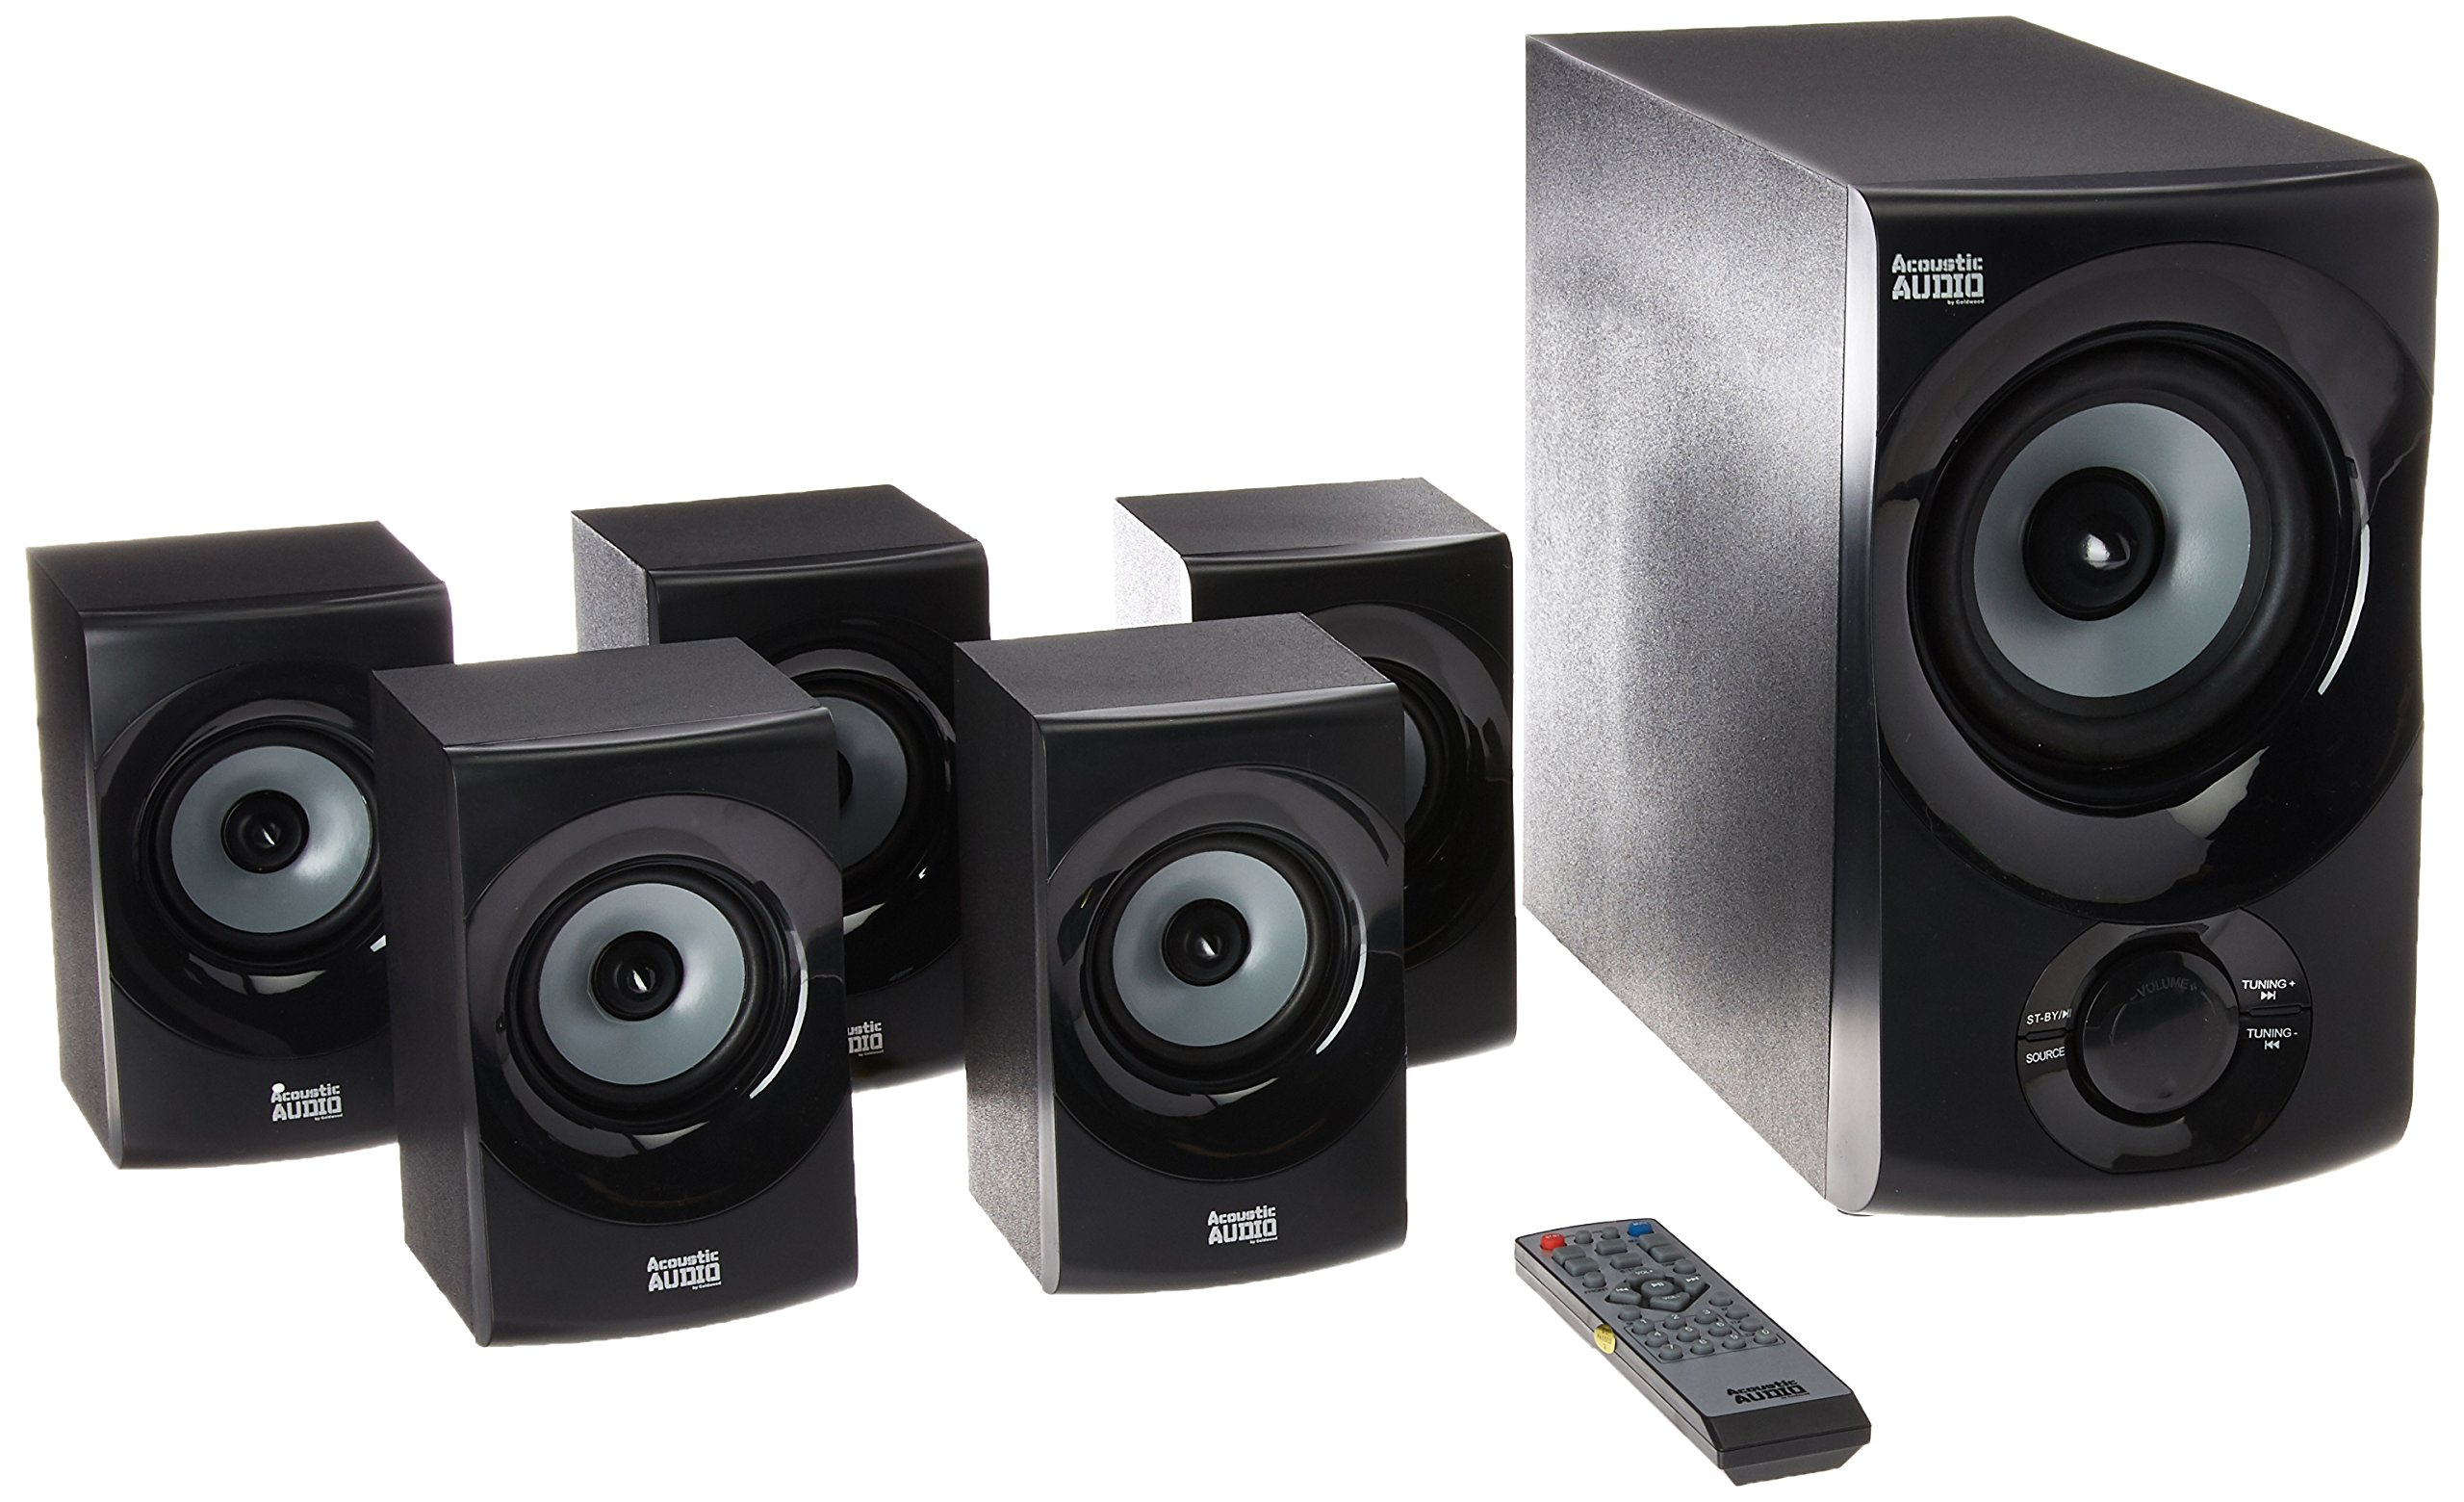 Acoustic Audio by Goldwood Bluetooth Speaker System 5.1-Channel Home Theater Speaker System Gray (AA5172)